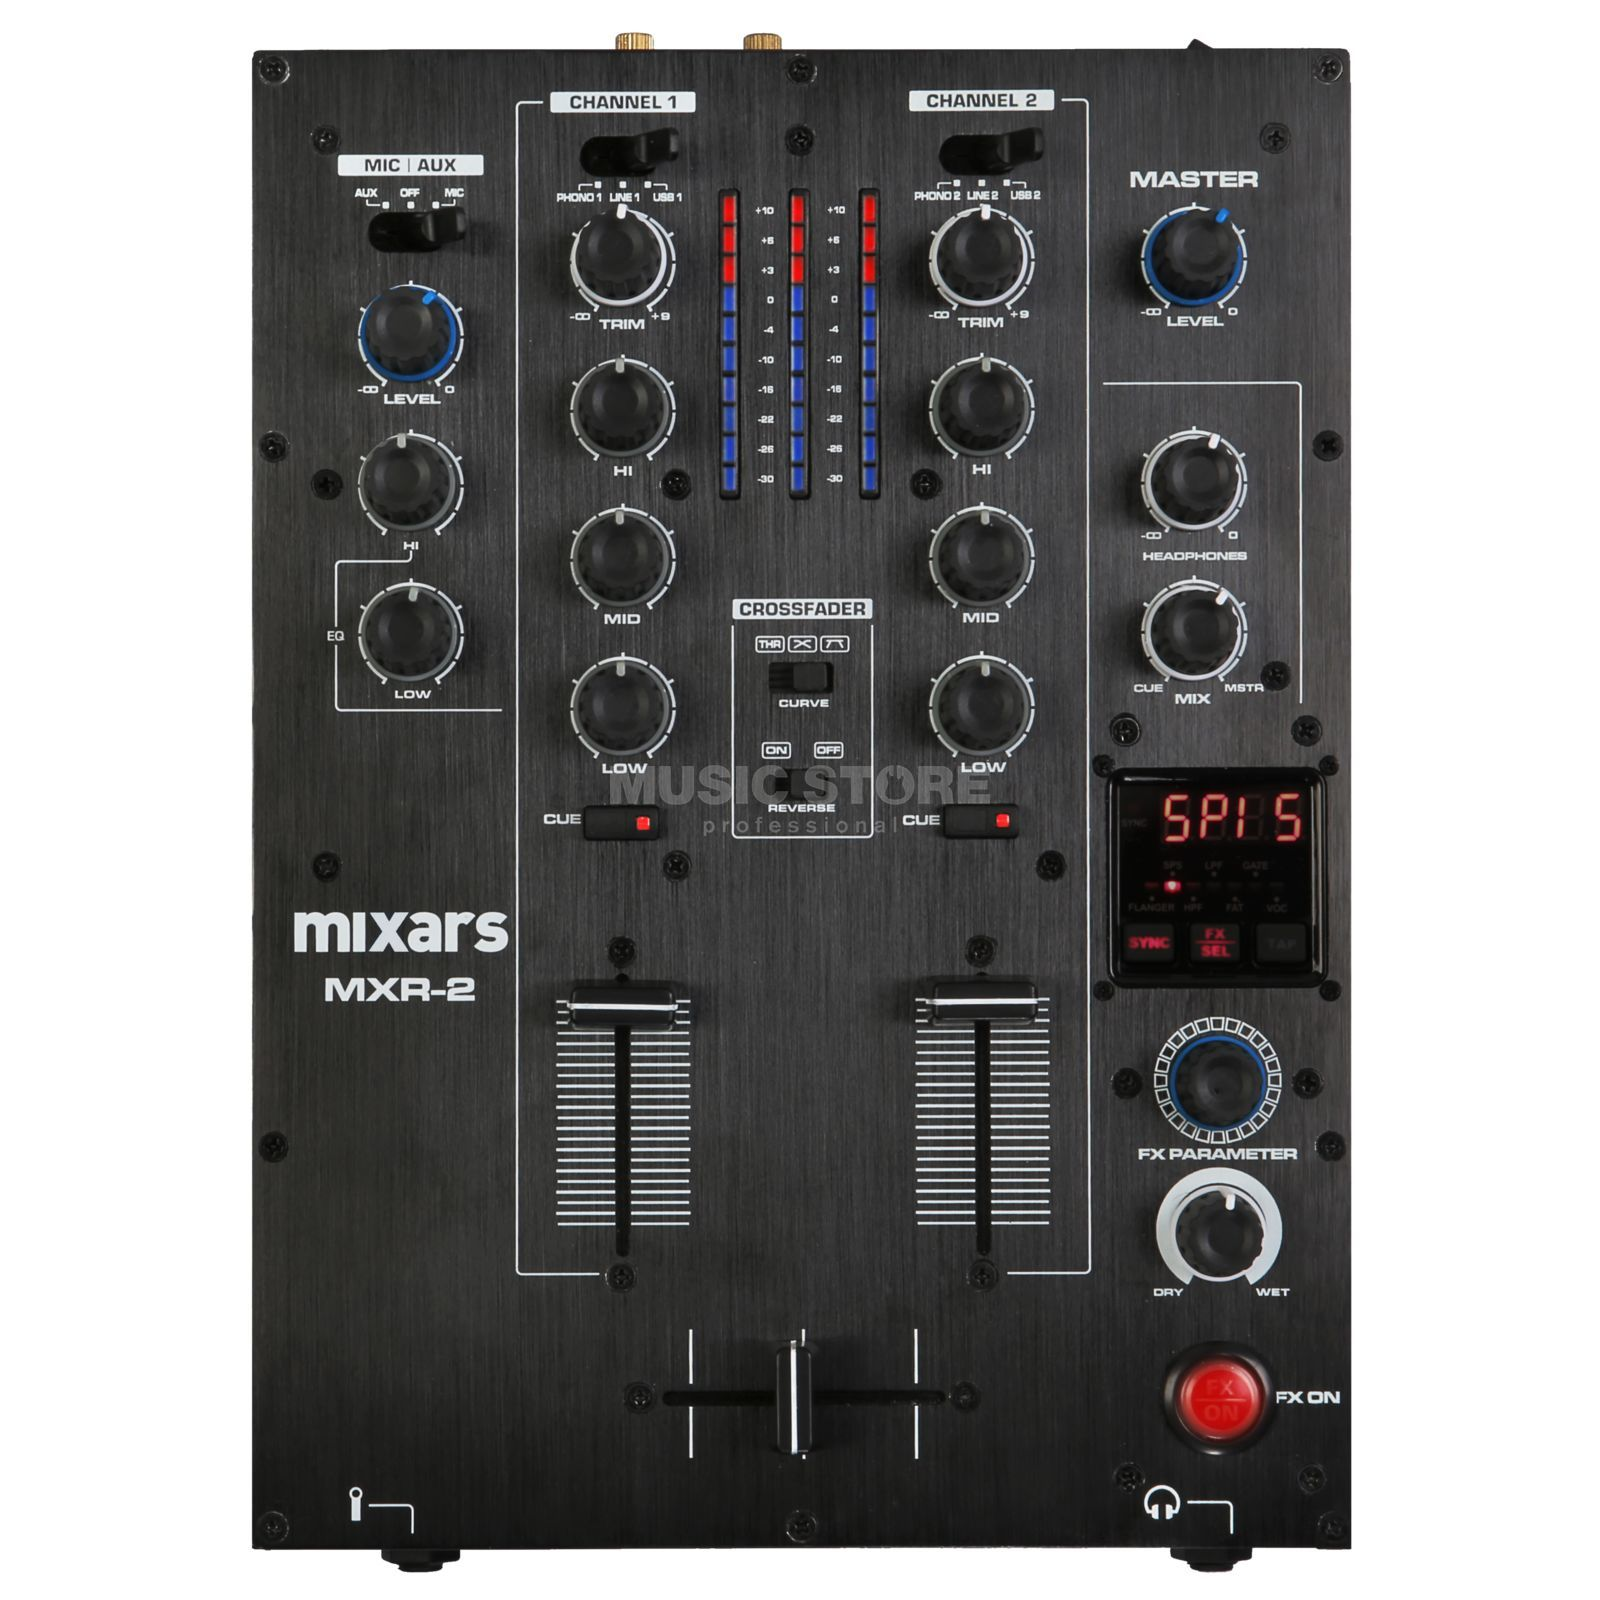 mixars MXR-2 Effect Mixer with Soundcard Produktbild